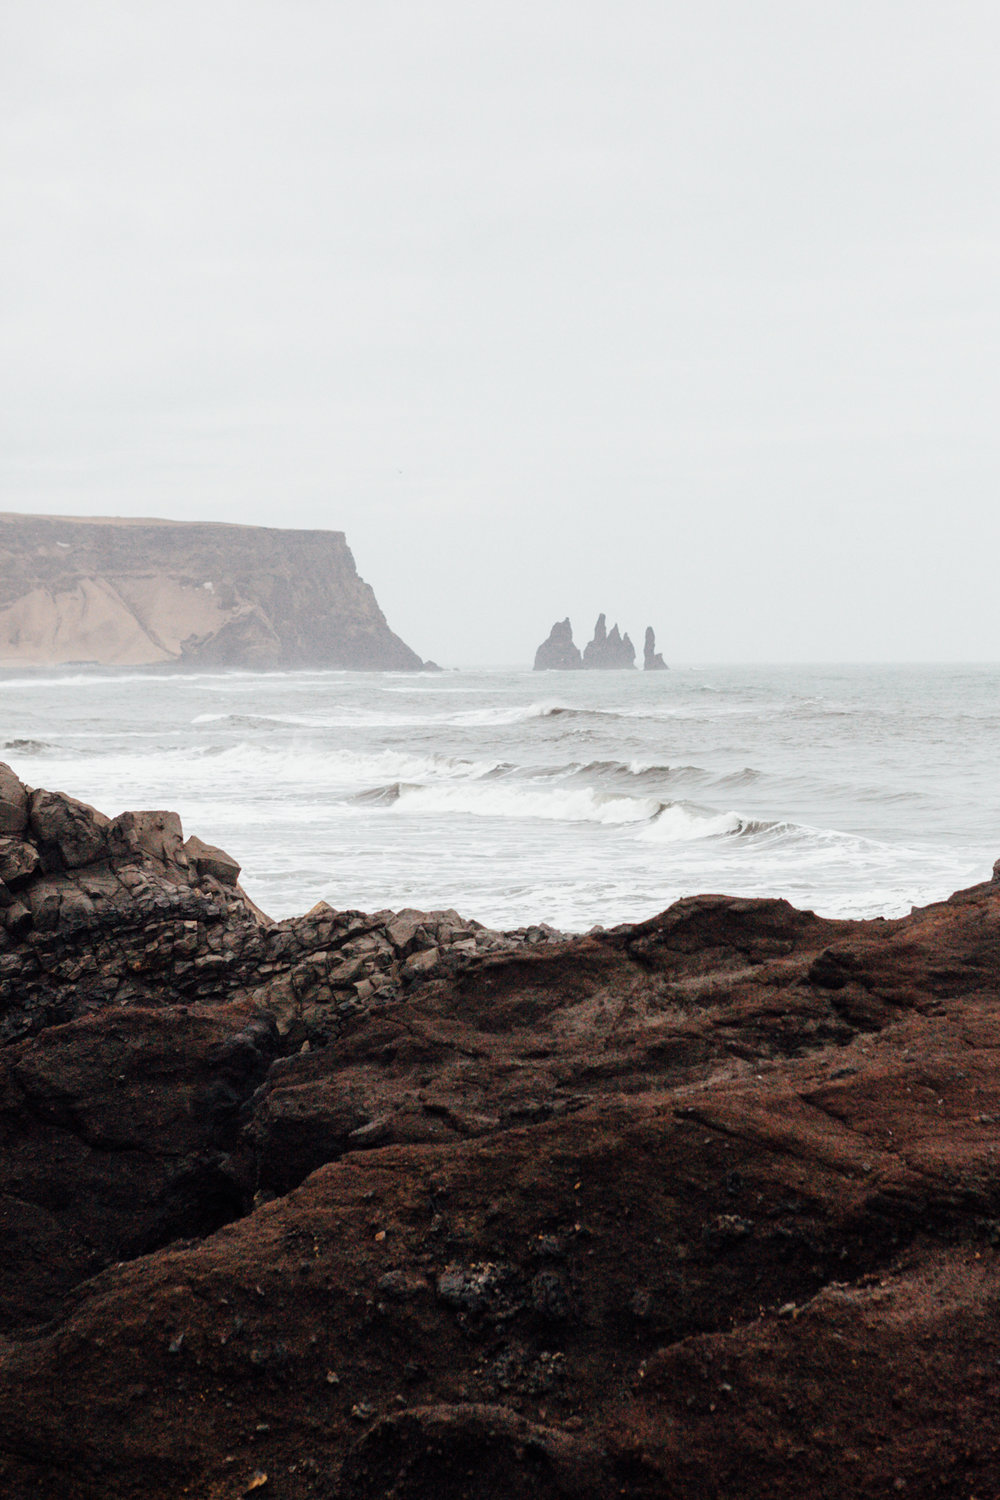 A distance view of Reynisdrangar from the Dyrhólaey Peninsula.